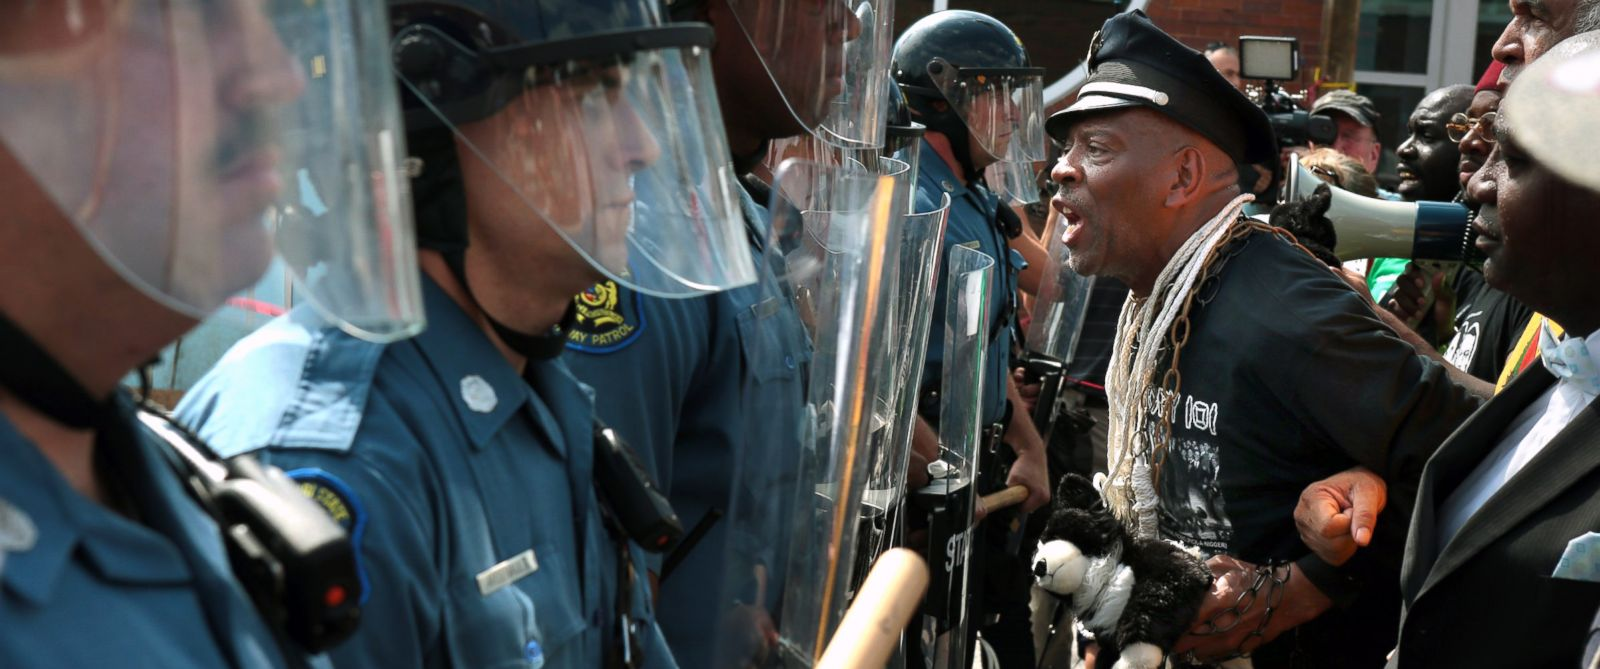 PHOTO: Protester Anthony Shahid leads marchers as they confront Missouri State Highway Patrol trooper in front of the Ferguson police station, Aug. 11, 2014, in Ferguson, Mo.